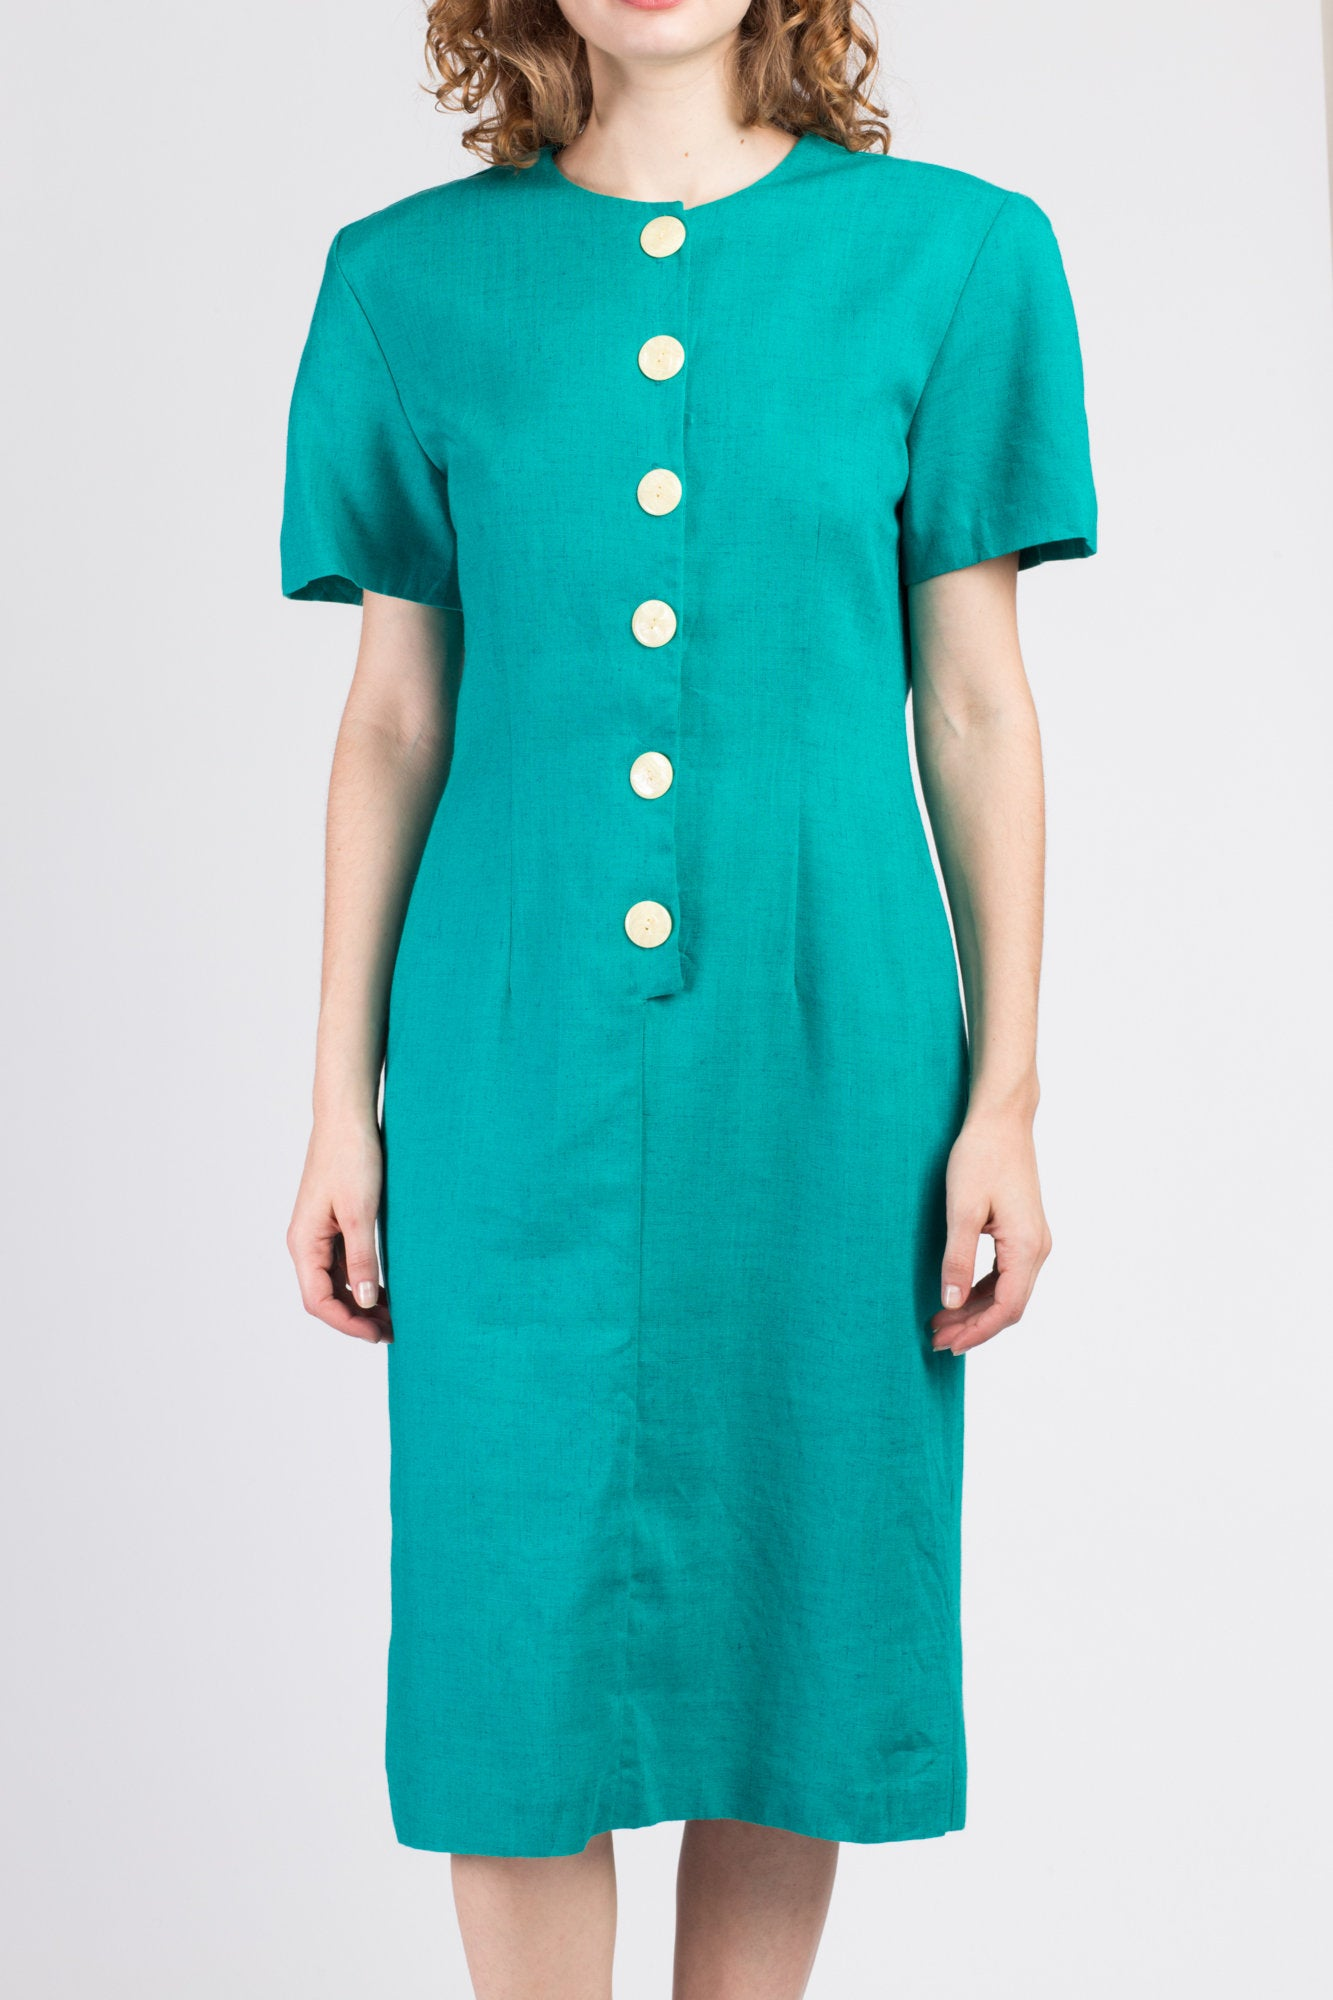 80s Teal Button Up Midi Dress - Medium to Large